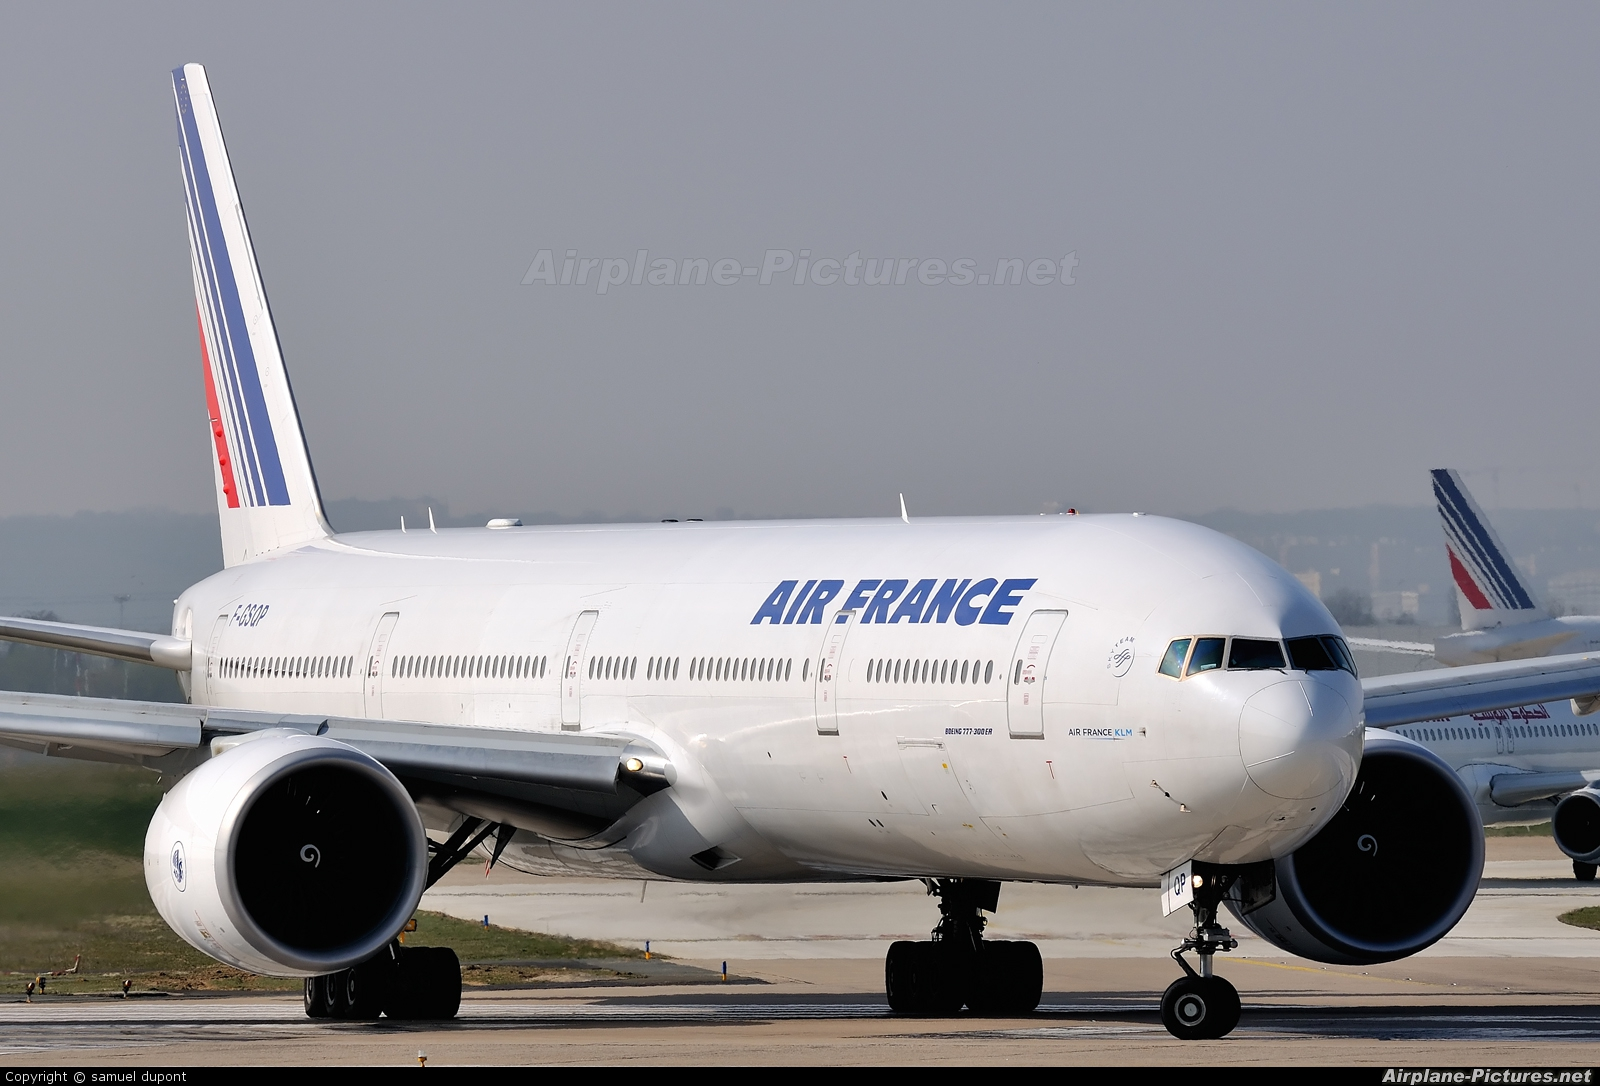 F gsqp air france boeing 777 300er at paris orly for Interieur boeing 777 300er air france